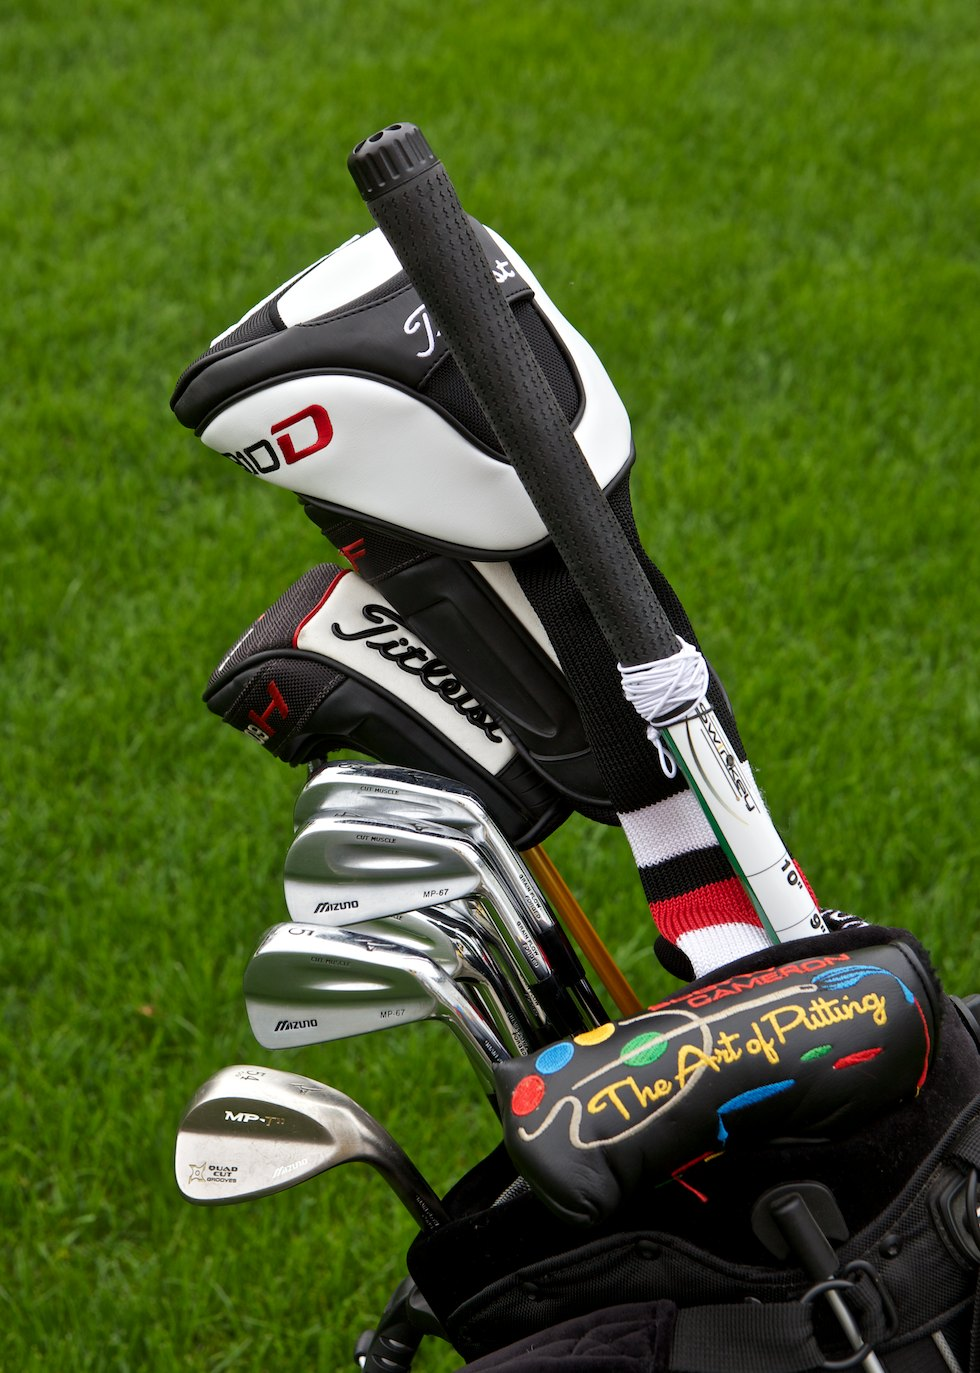 Swinkey in bag